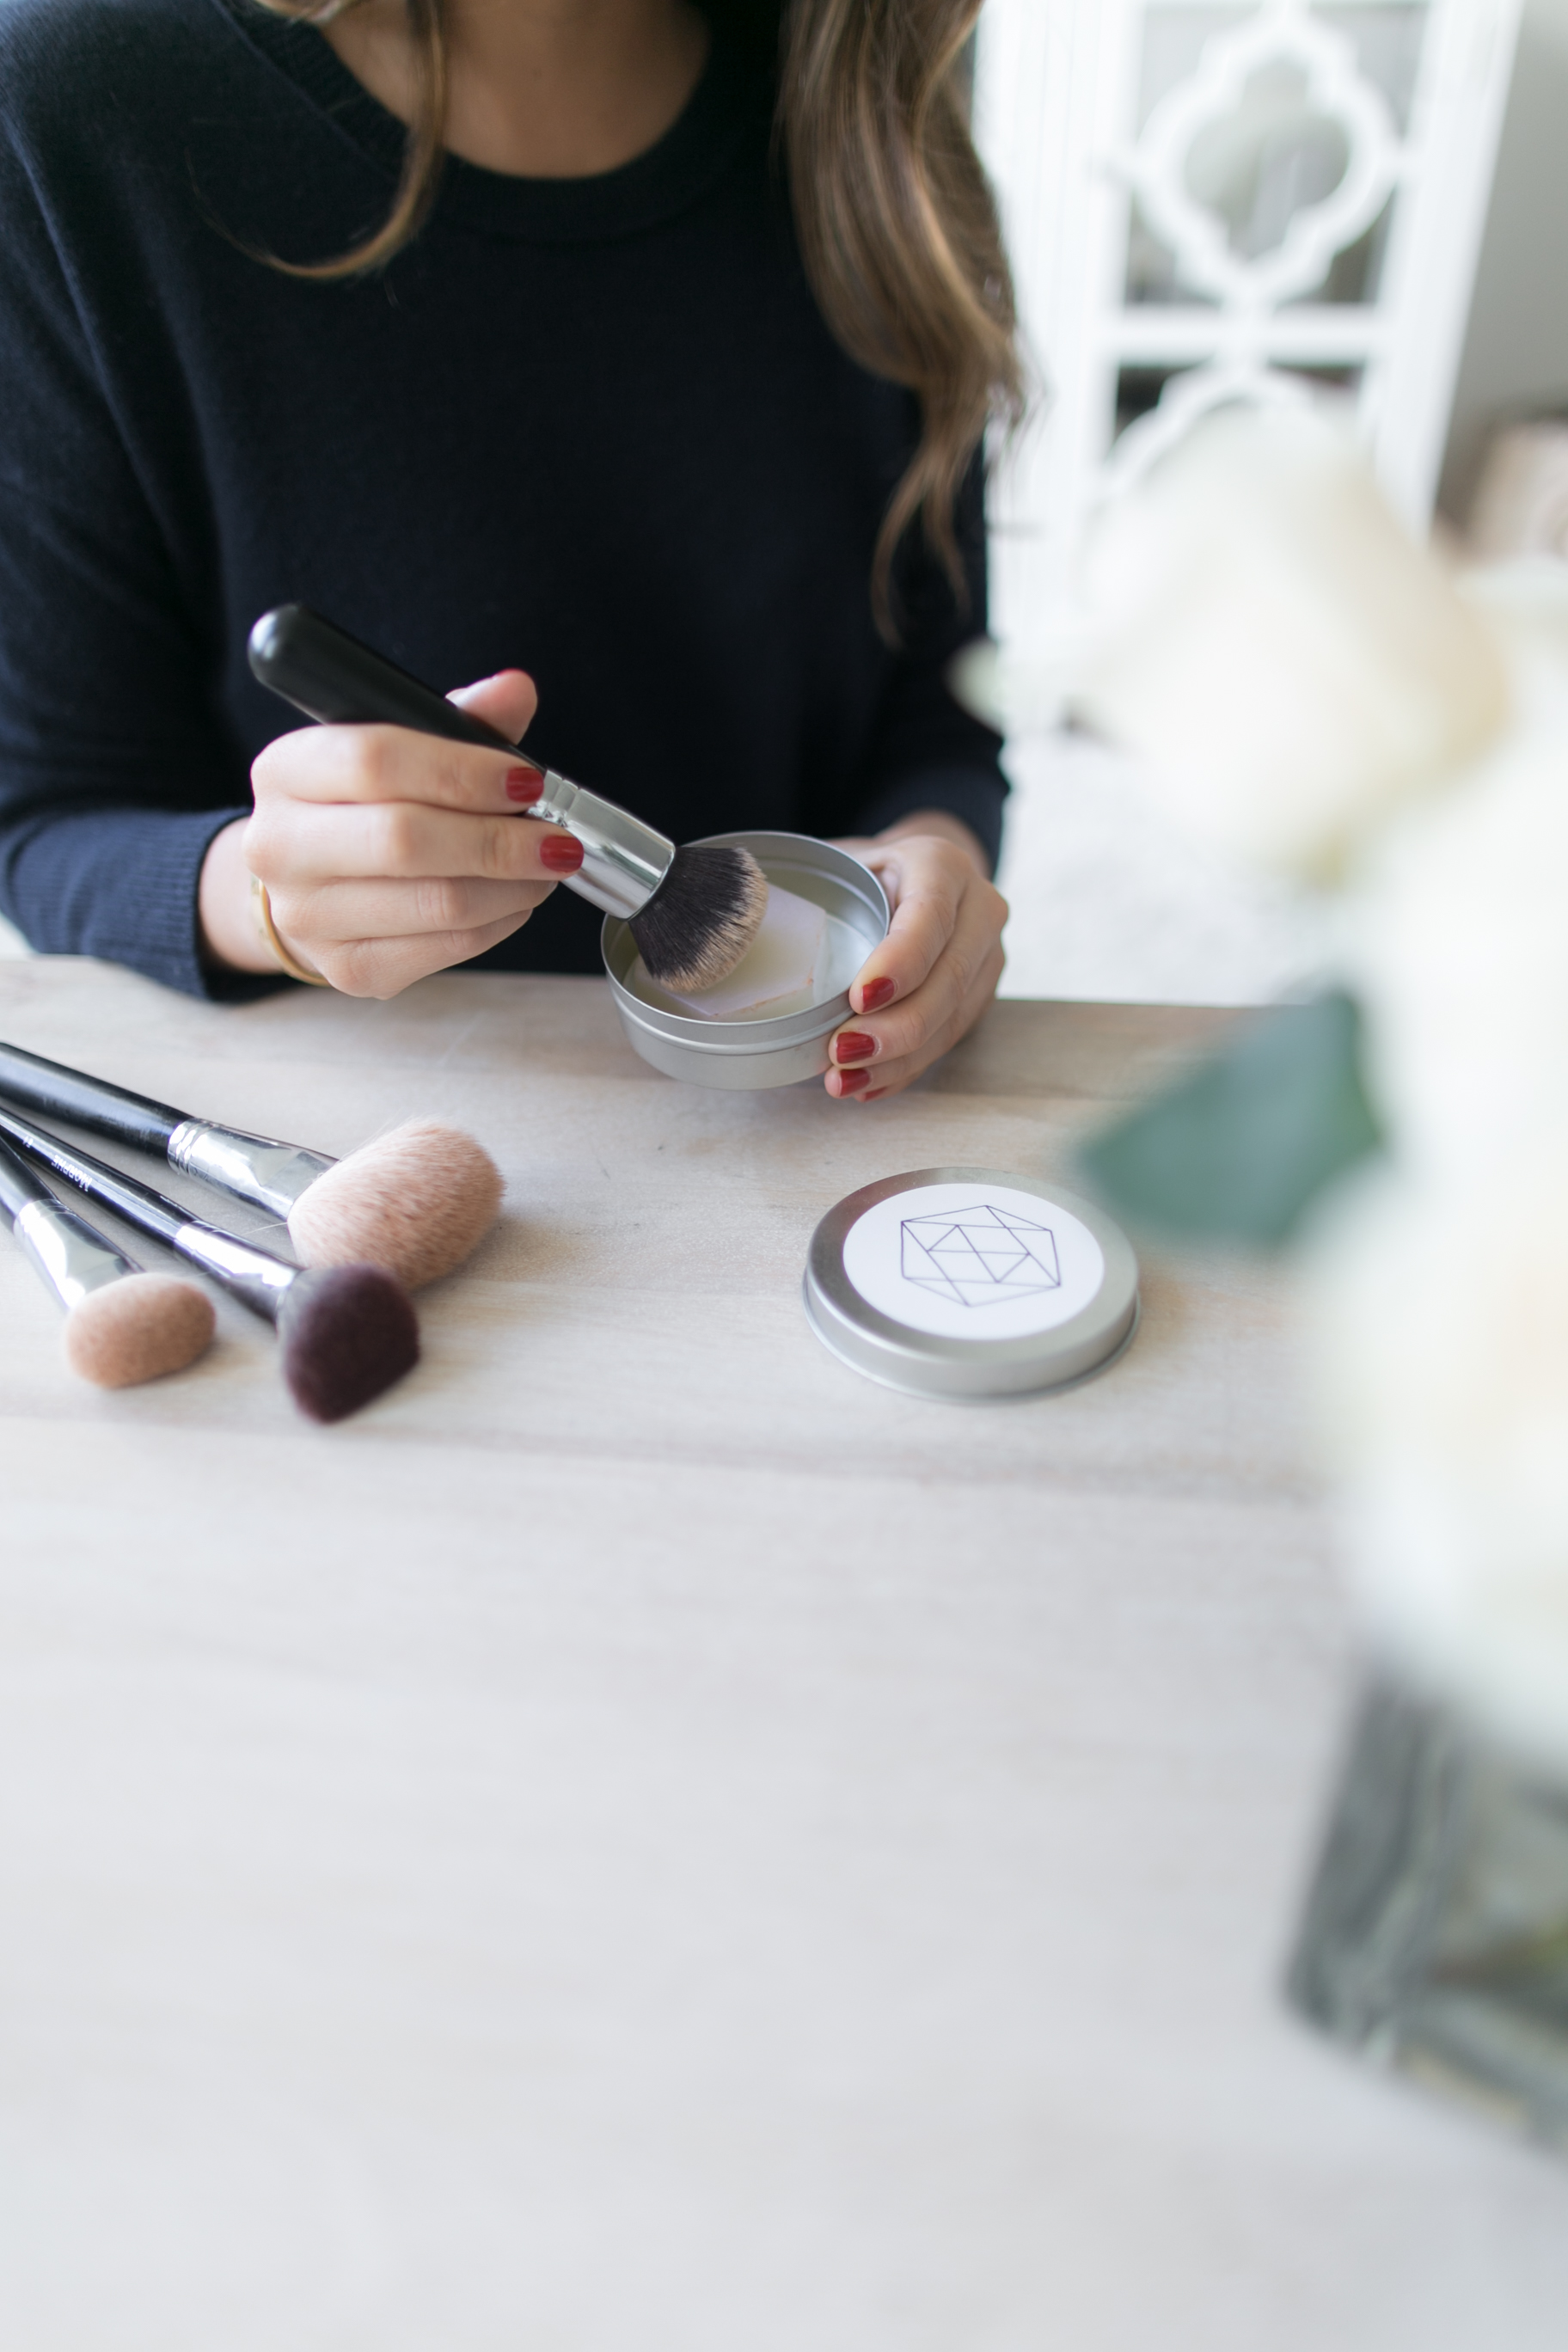 When Did You Last Clean Your Makeup Brushes? You Can Tell Us.